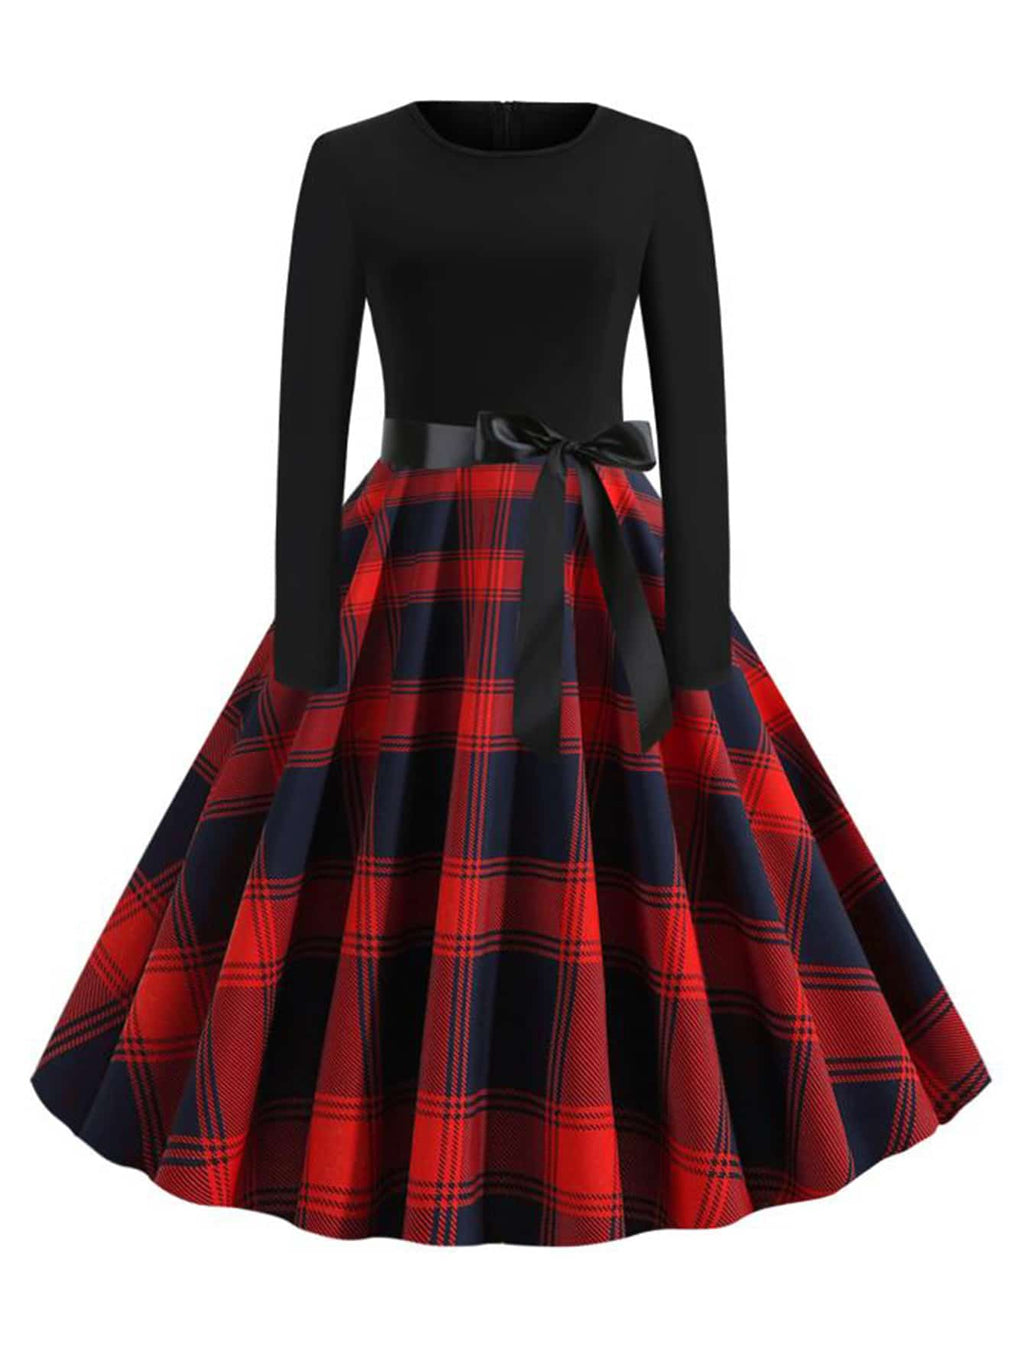 Plus Size Adorable Plaid Print Belted Flare Dress